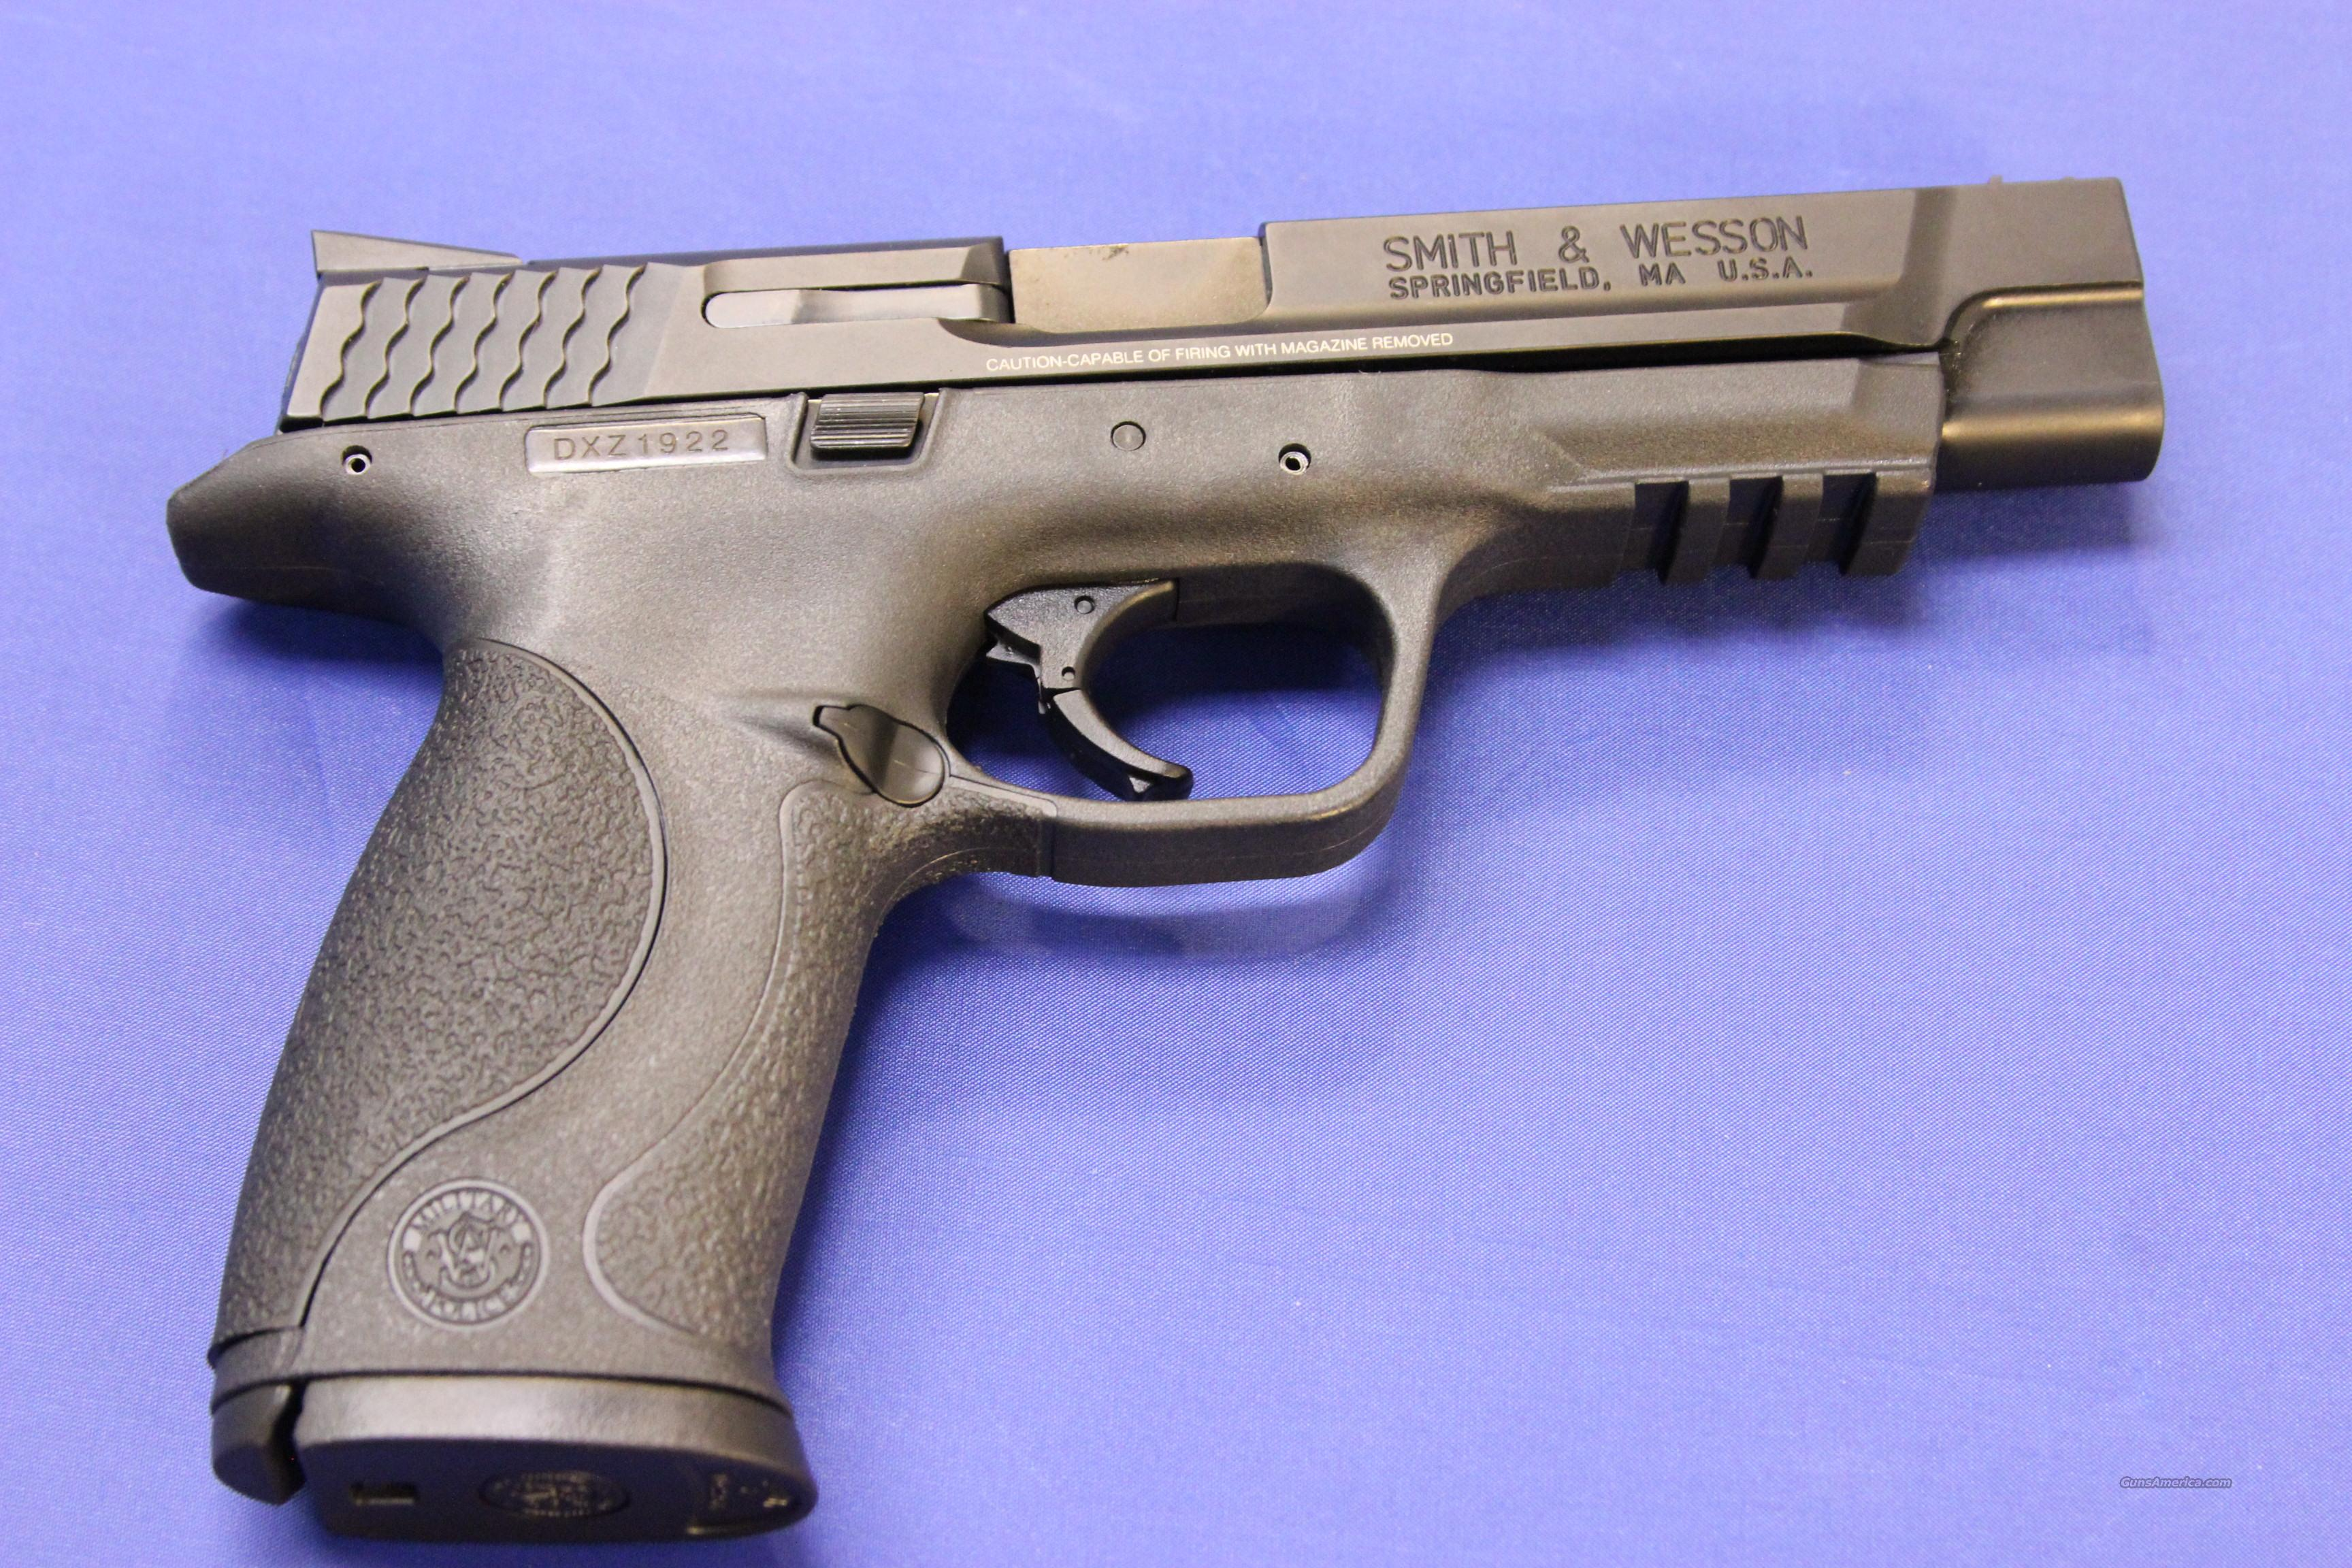 SMITH & WESSON M&P PRO 9mm - NEW!  Guns > Pistols > Smith & Wesson Pistols - Autos > Polymer Frame